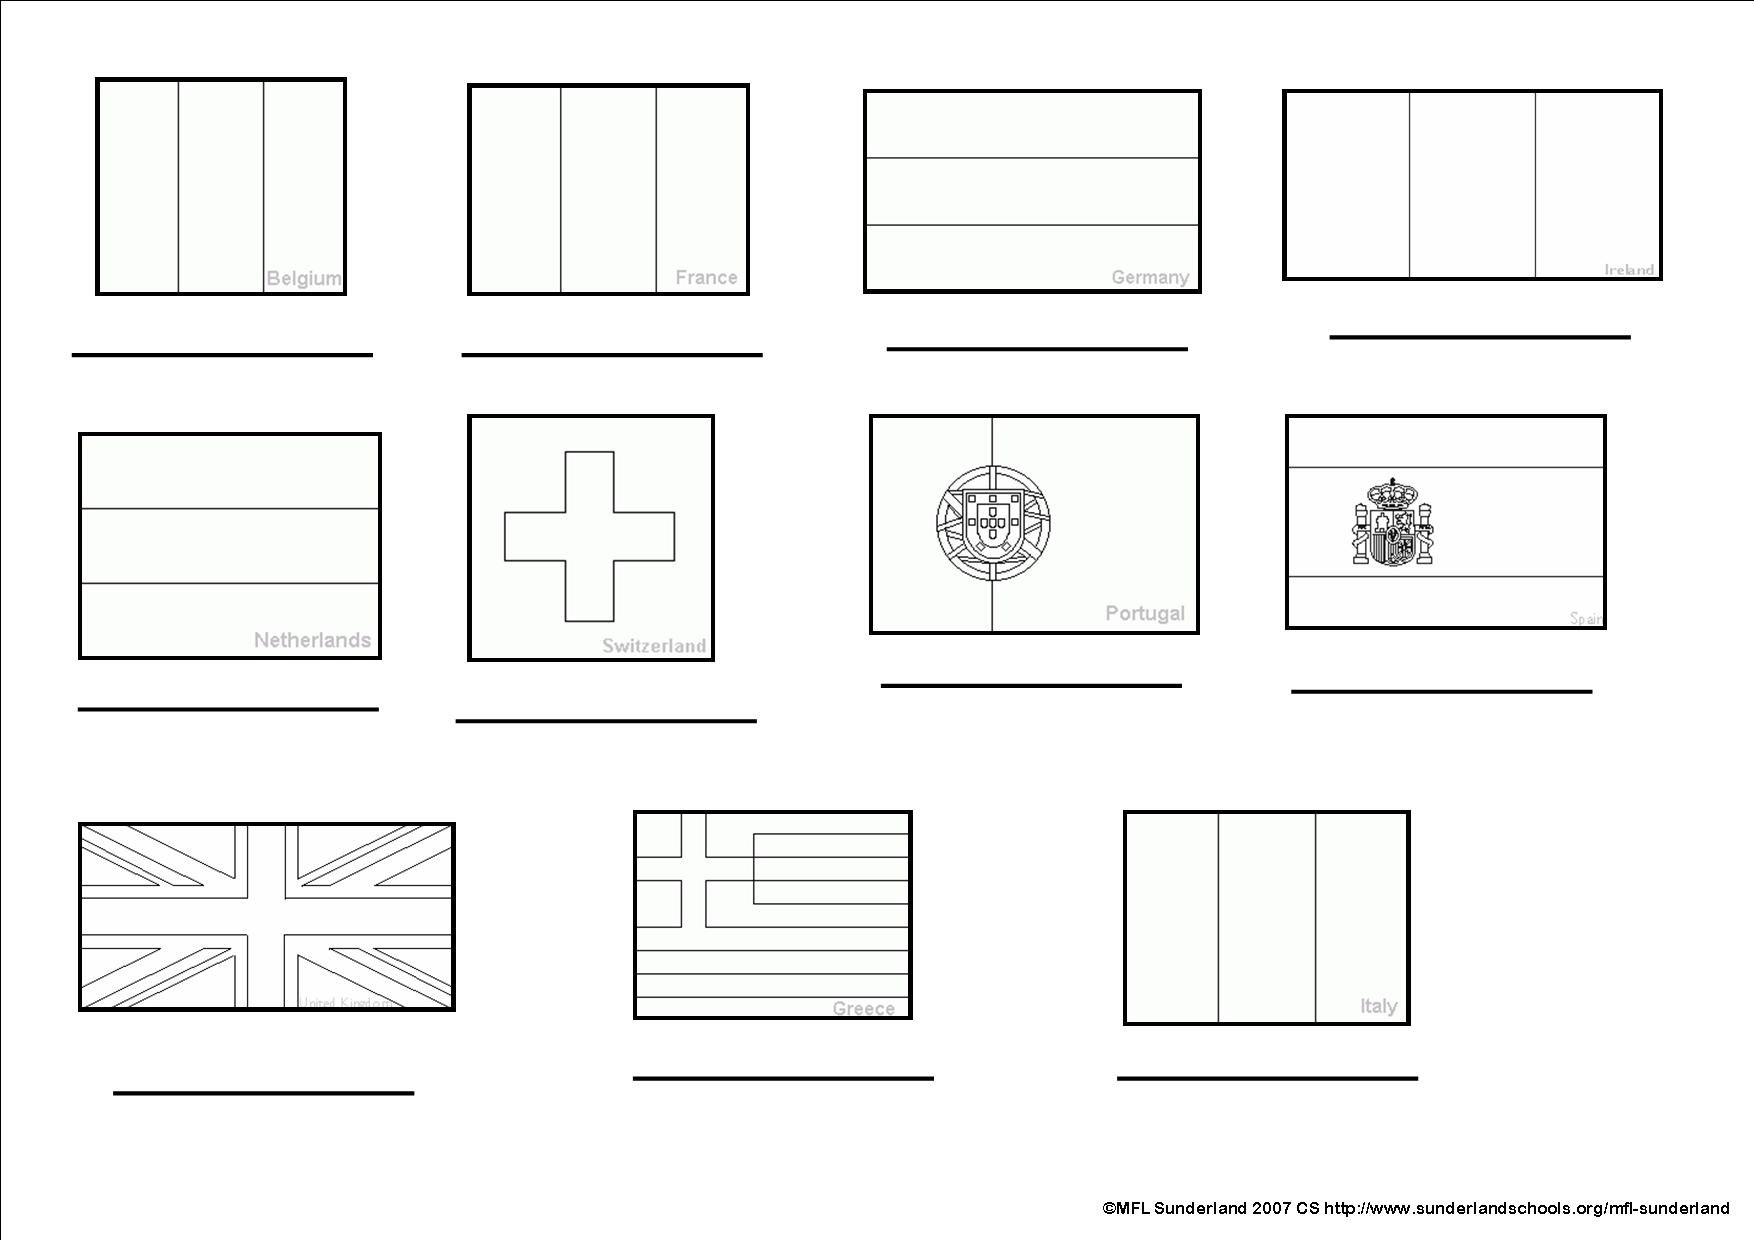 Spanish ks3 worksheets flags to colour in and label jpg 124 kb robcynllc Gallery